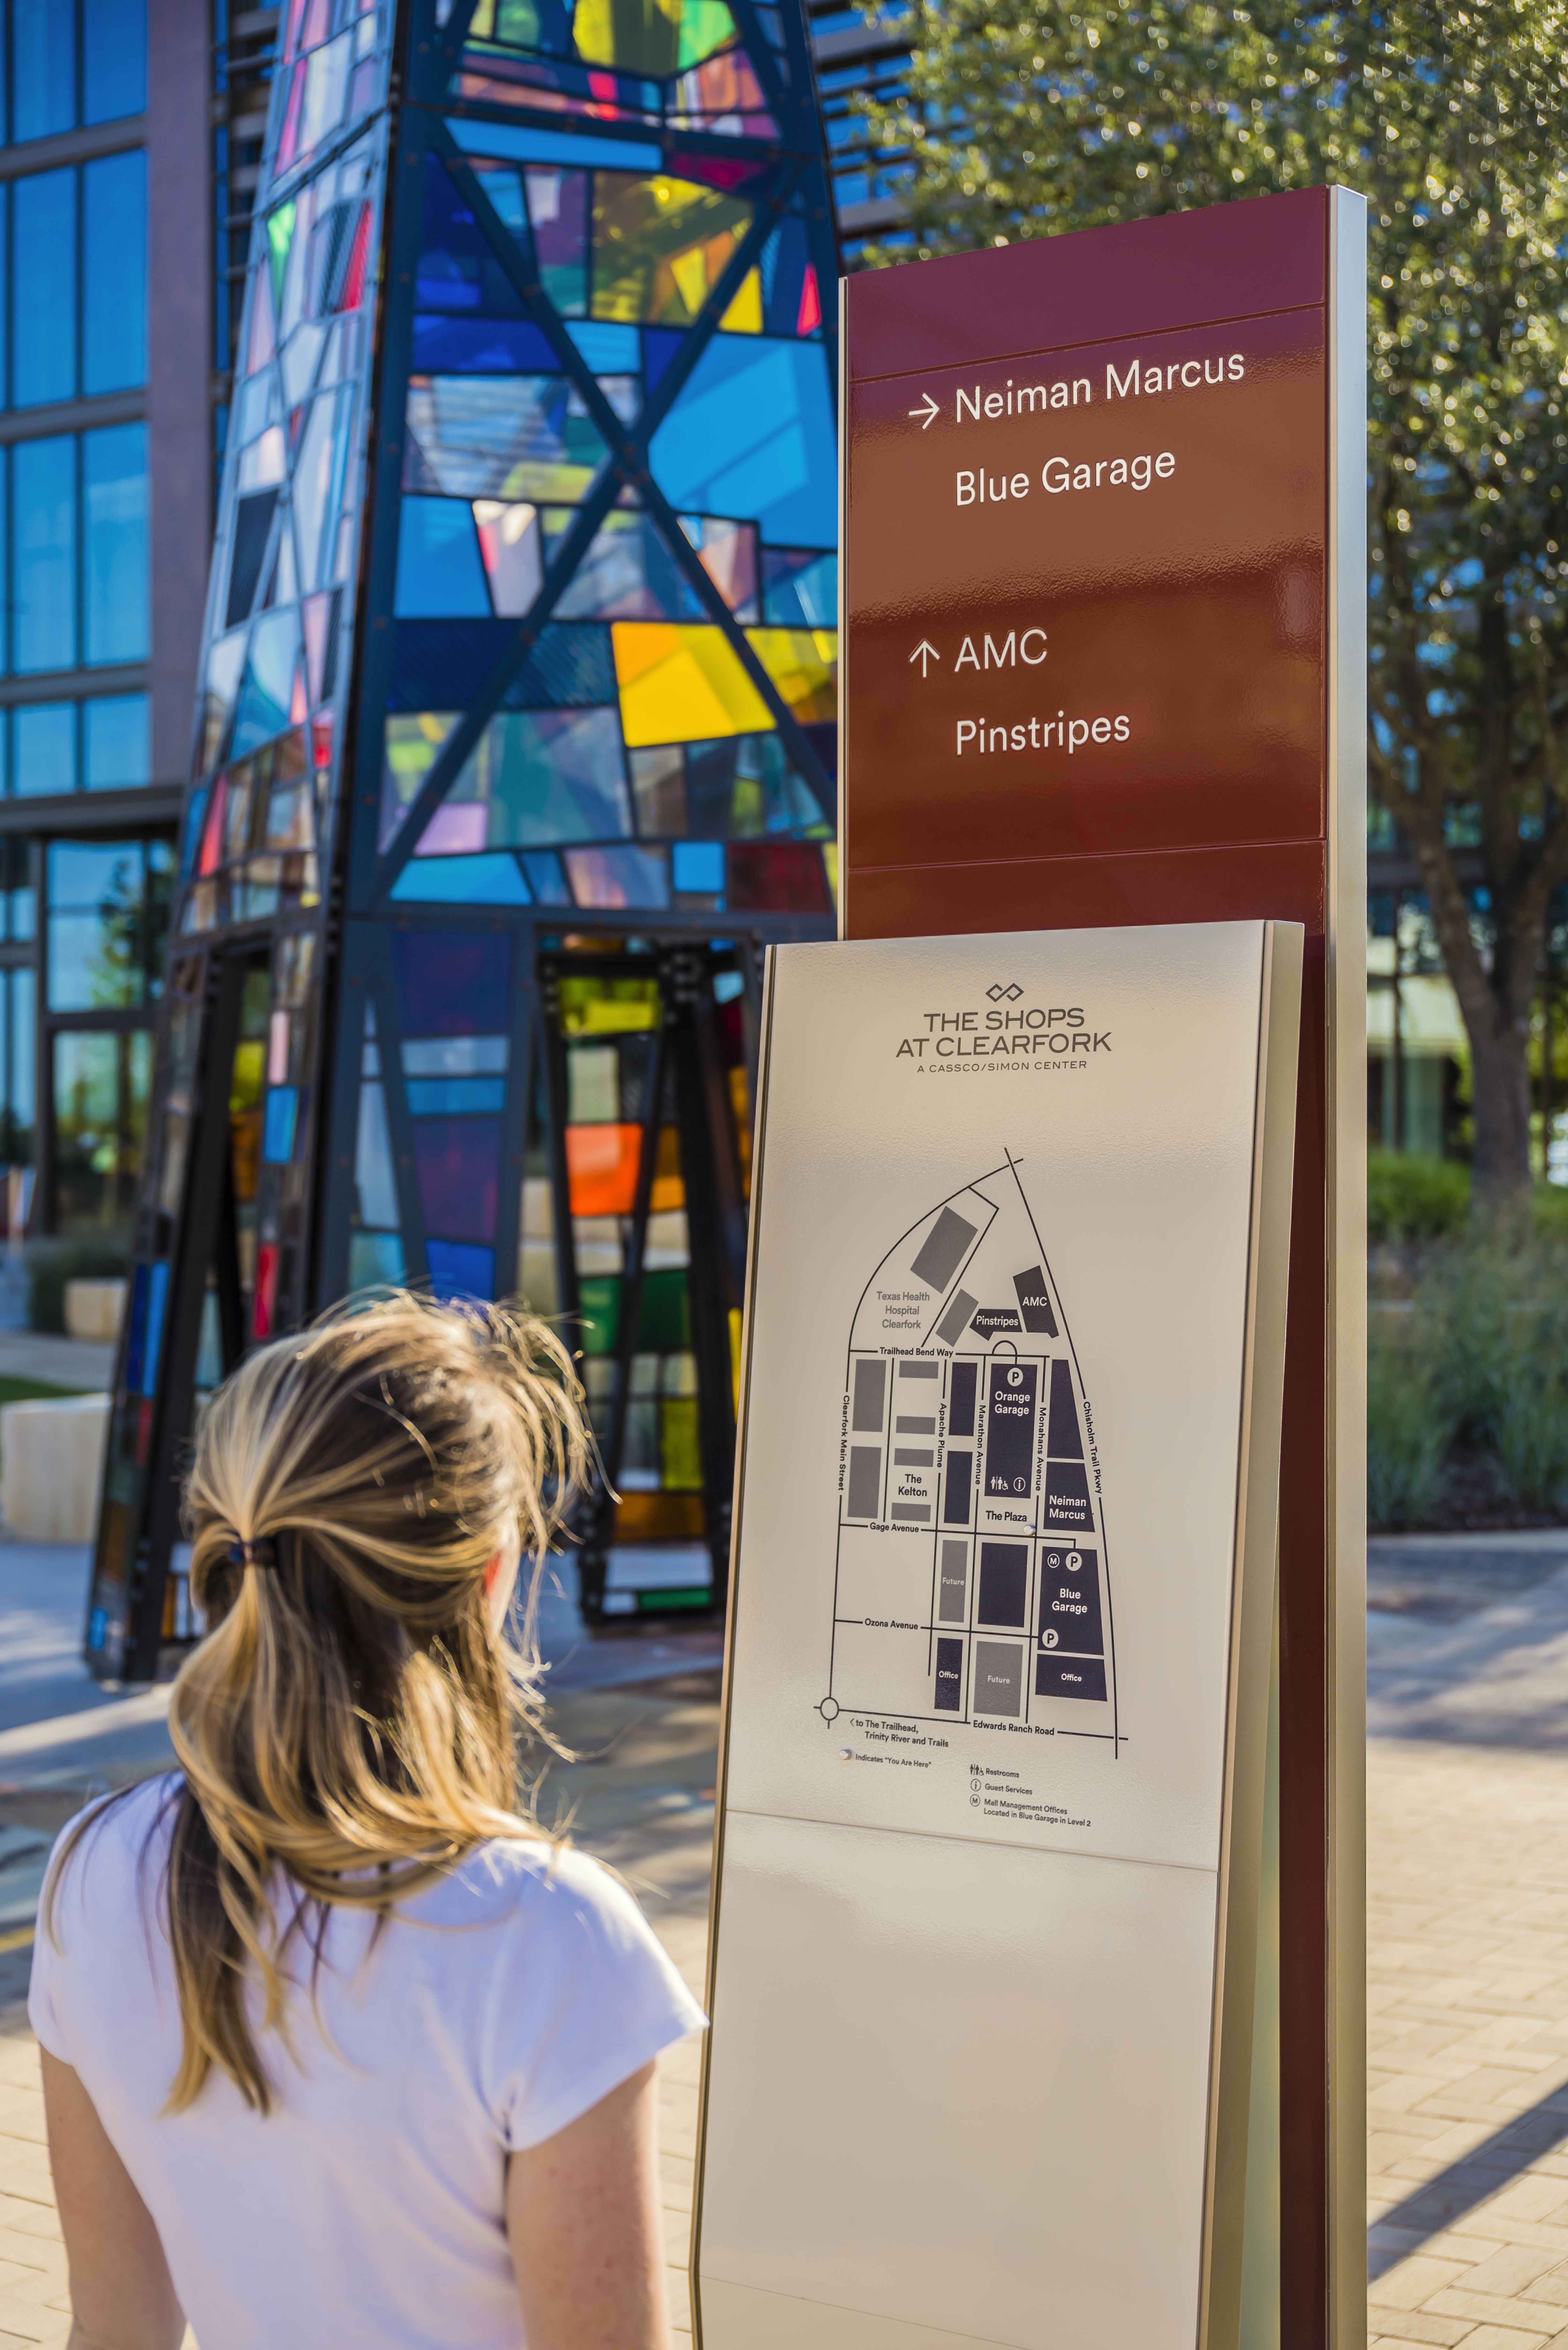 Wayfinding Graphics By Dallas Based Placemaking Design Firm Rsm Design Wayfinding Signage Design Wayfinding Signage Wayfinding